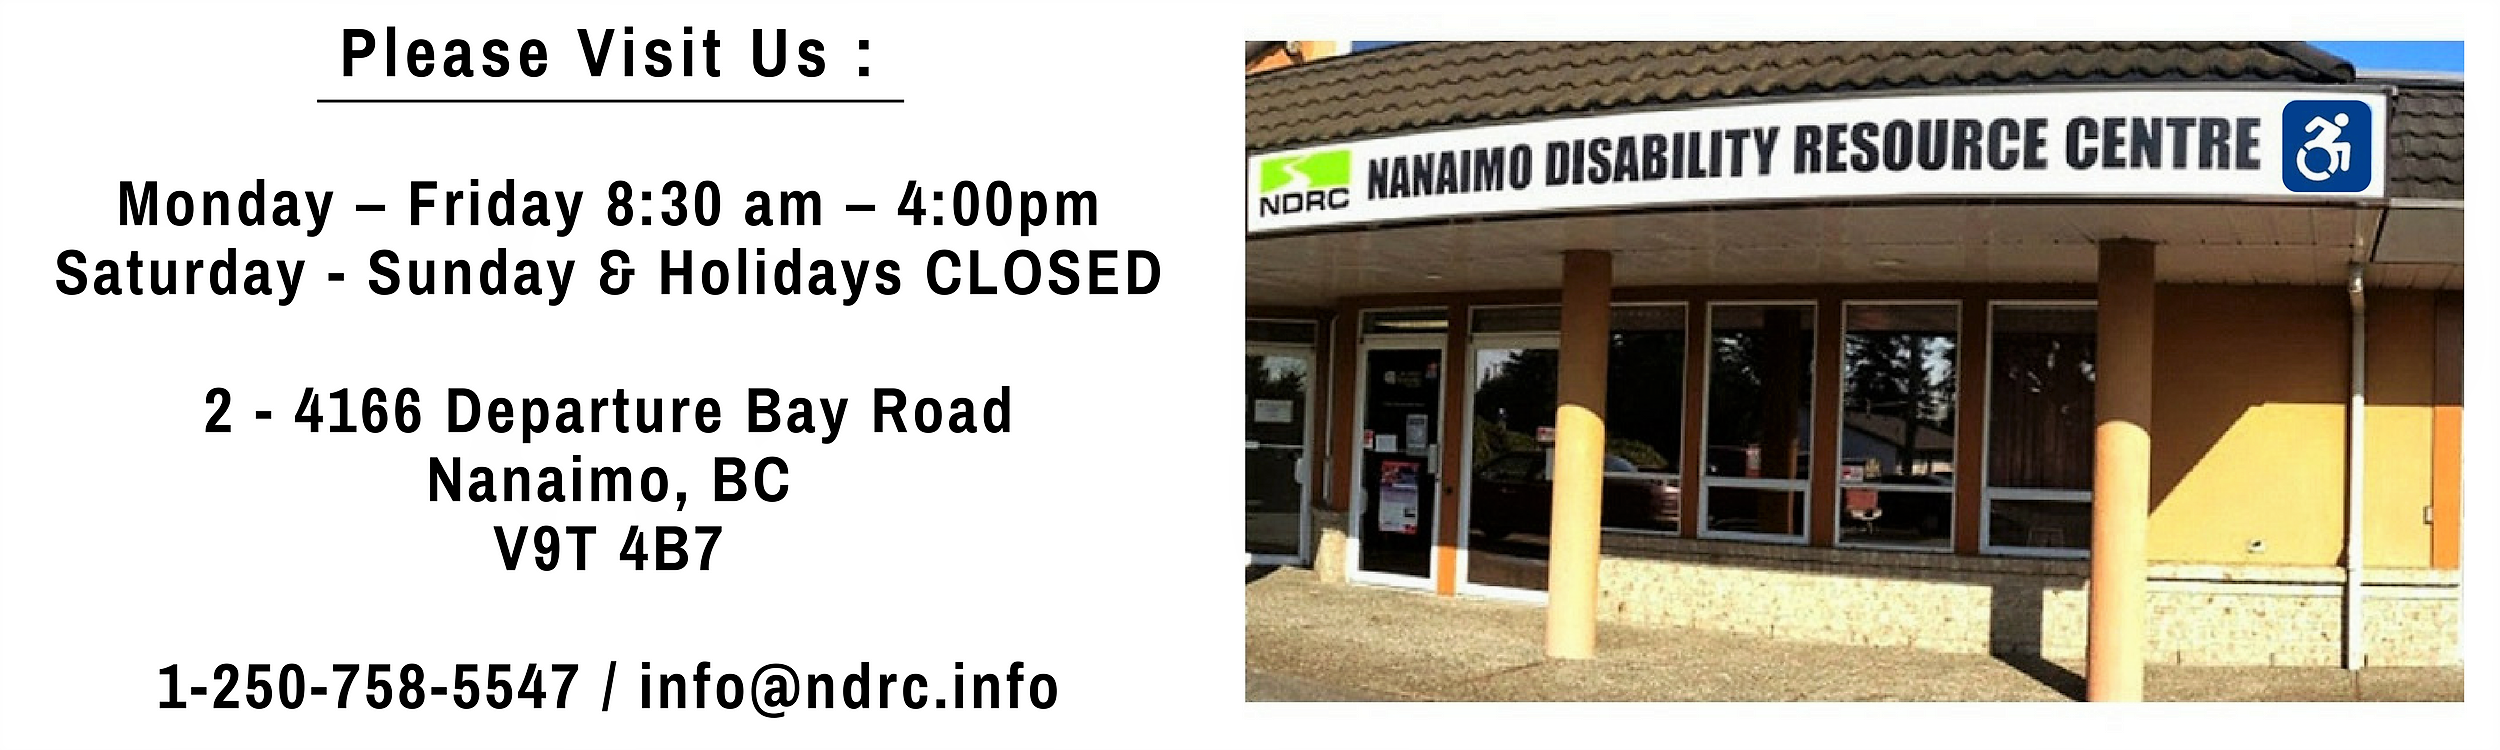 A listing of NDRC's hours (Monday to Friday 830 am to 4 pm, saturdays, sundays, and holidays closed) with a picture of the NDRC building, address, phone number, and email address.